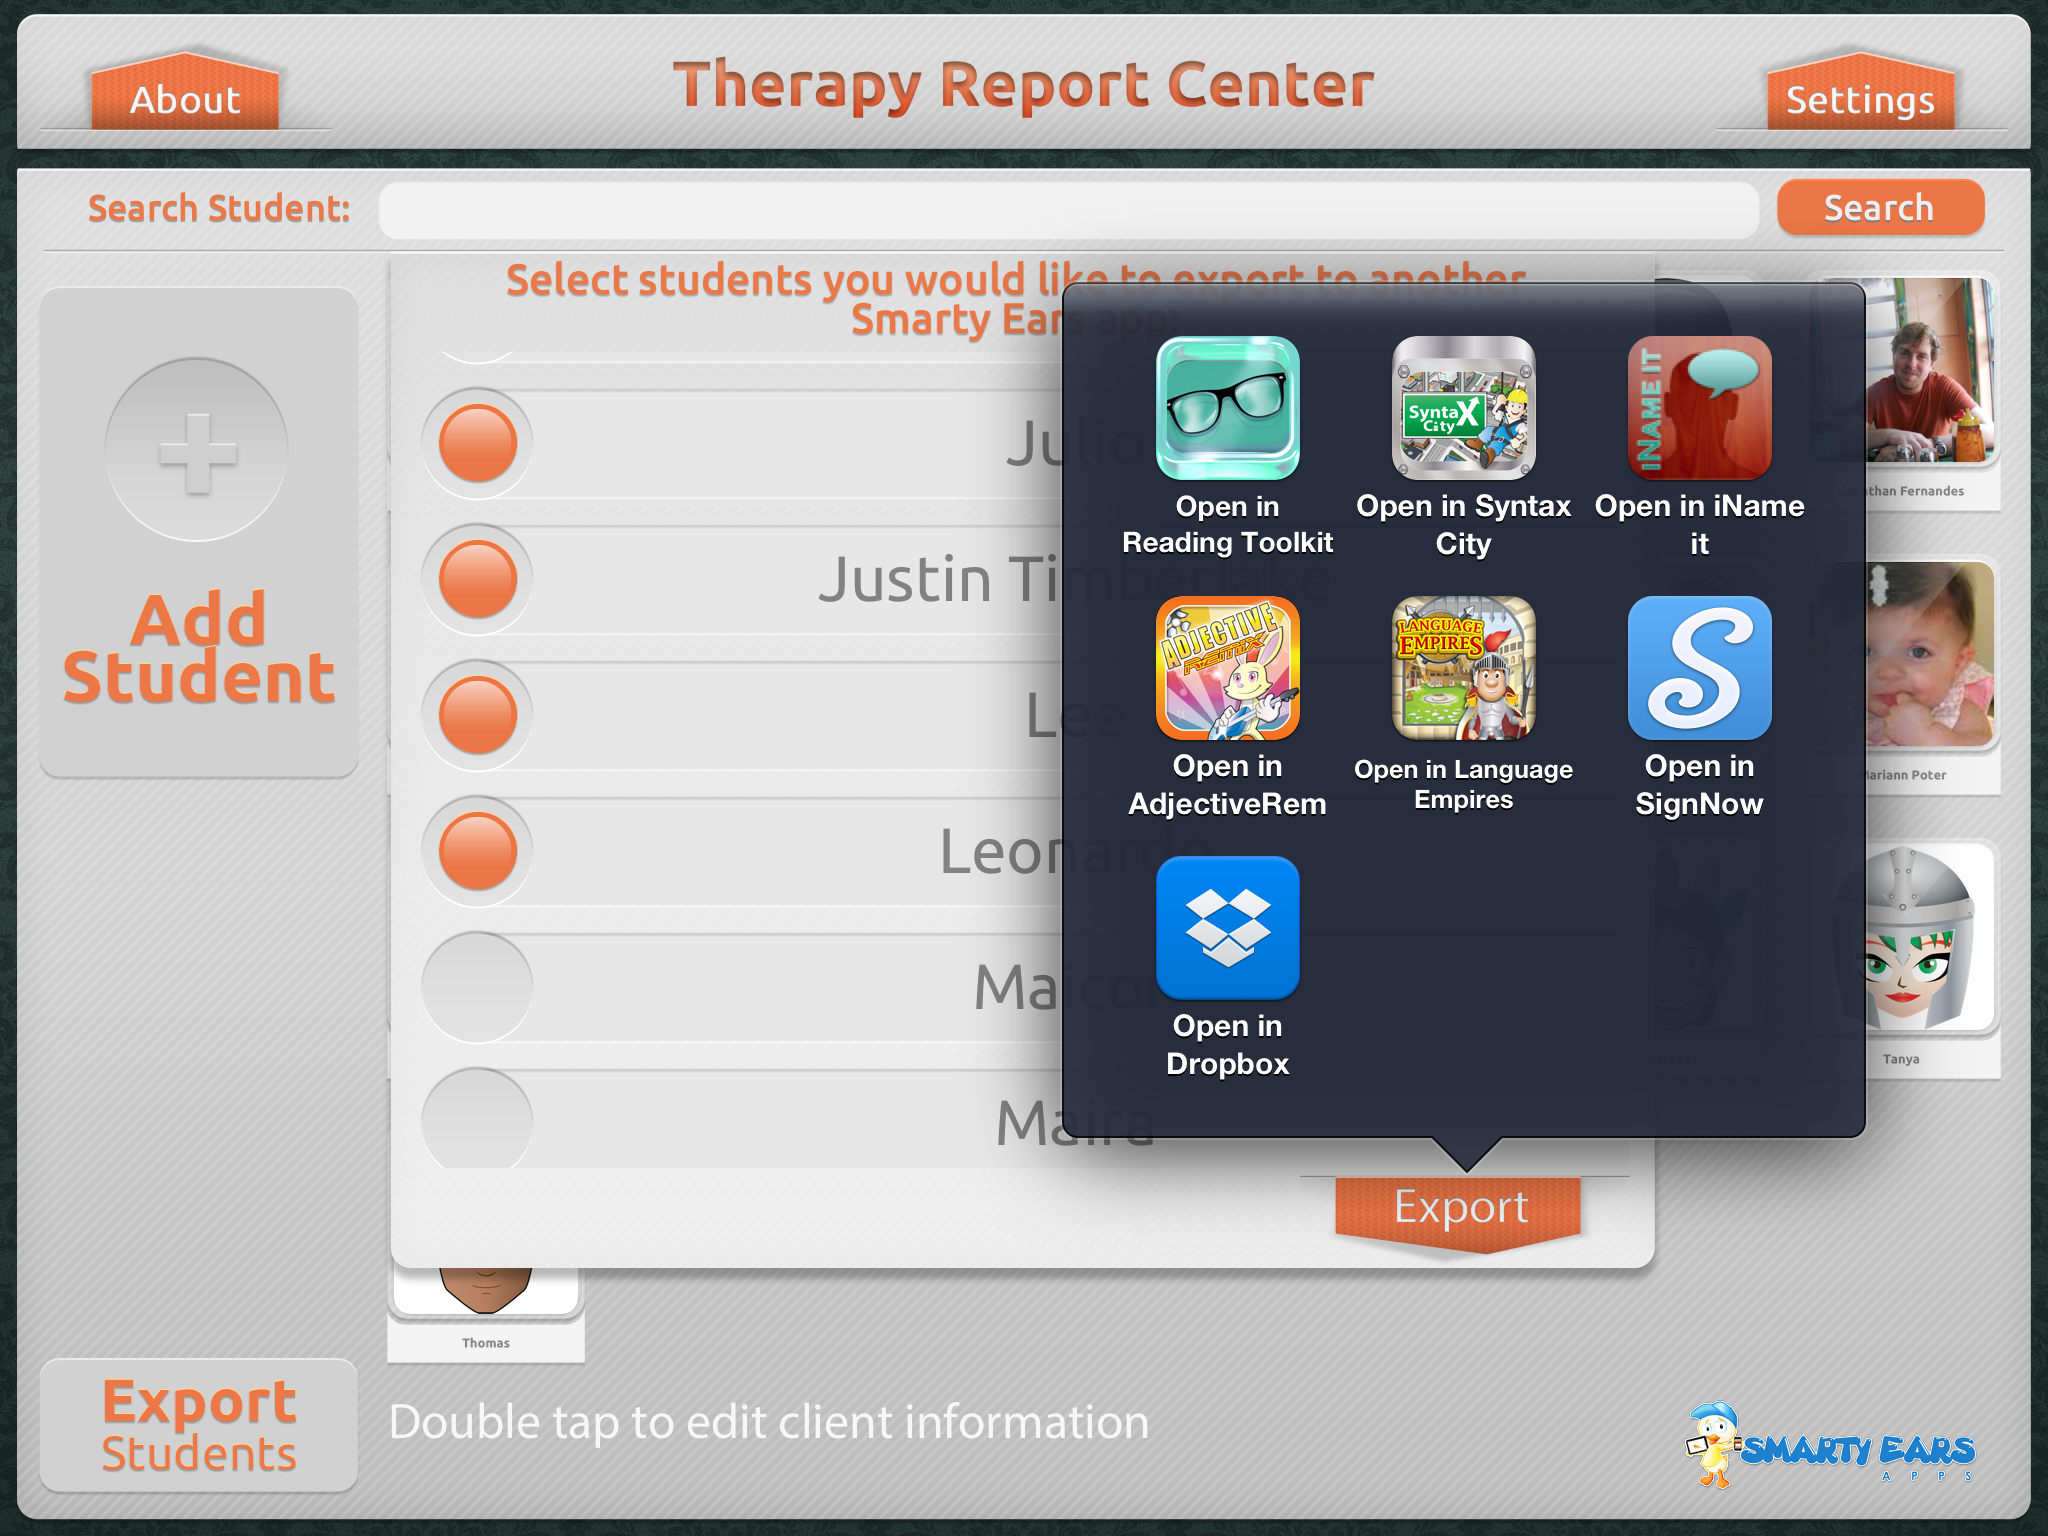 Therapy Report Center Export Students